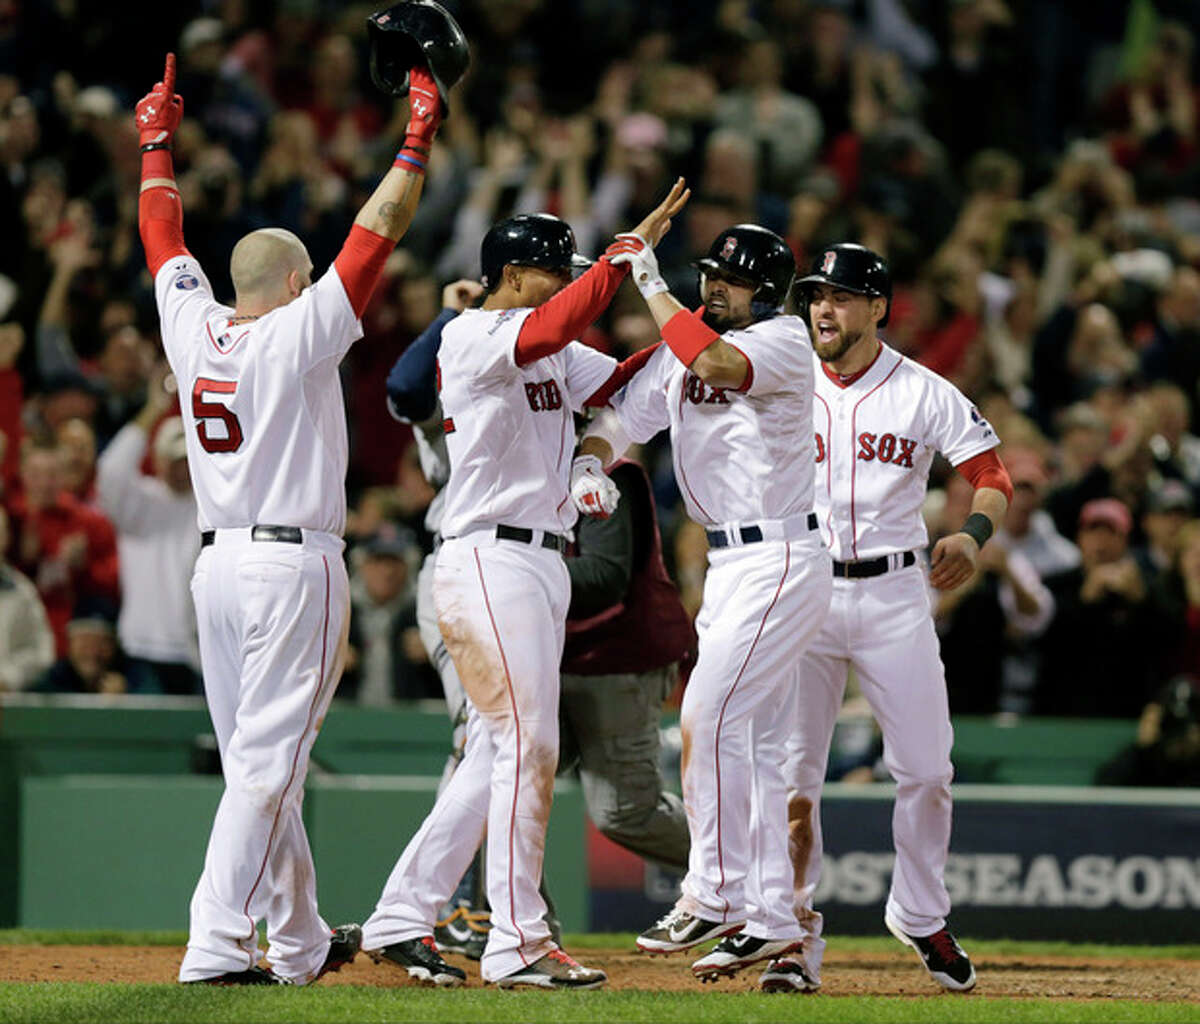 Boston Red Sox's Shane Victorino, second from right, celebrates his grand slam with Jonny Gomes, left, Xander Bogaerts, second from left, and Jacoby Ellsbury, right, in the seventh inning during Game 6 of the American League baseball championship series against the Detroit Tigers on Saturday, Oct. 19, 2013, in Boston. (AP Photo/Charlie Riedel)